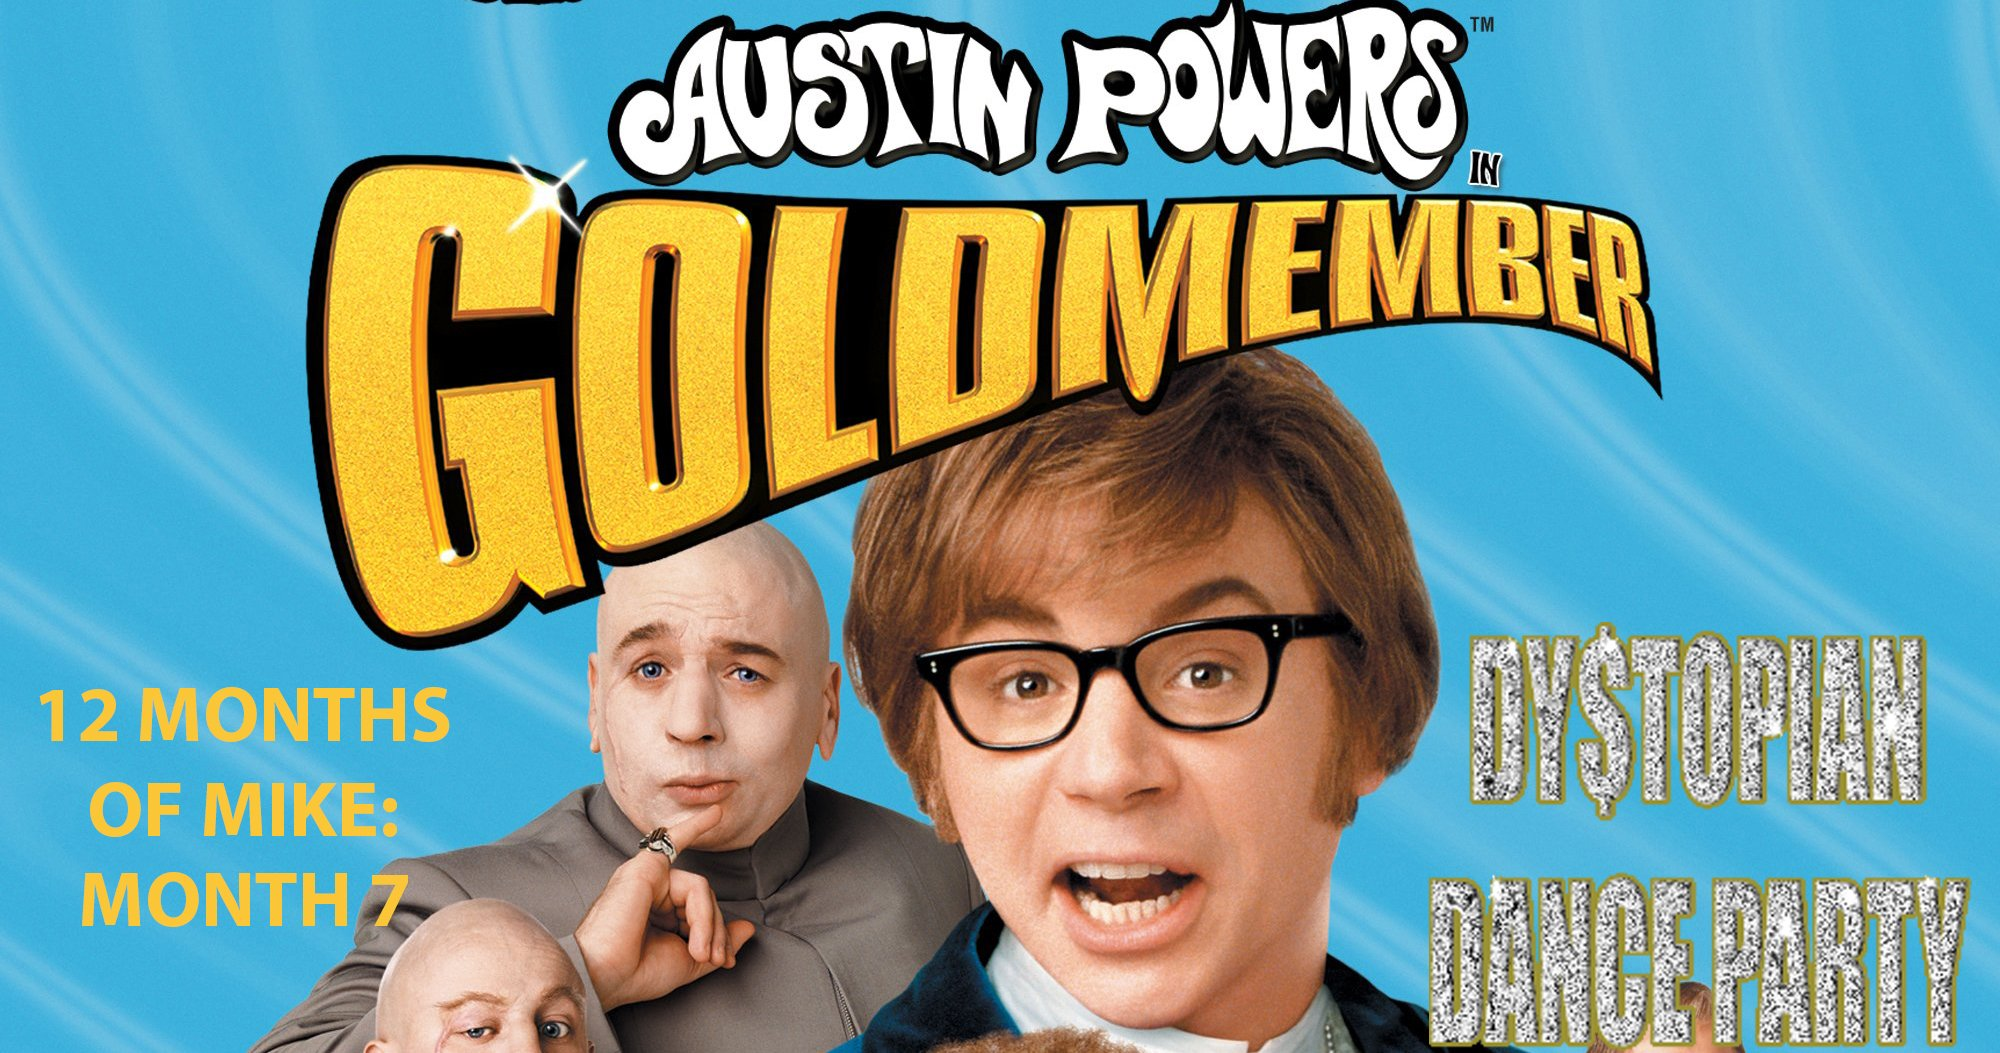 12 Months of Mike Month 7: Austin Powers in Goldmember